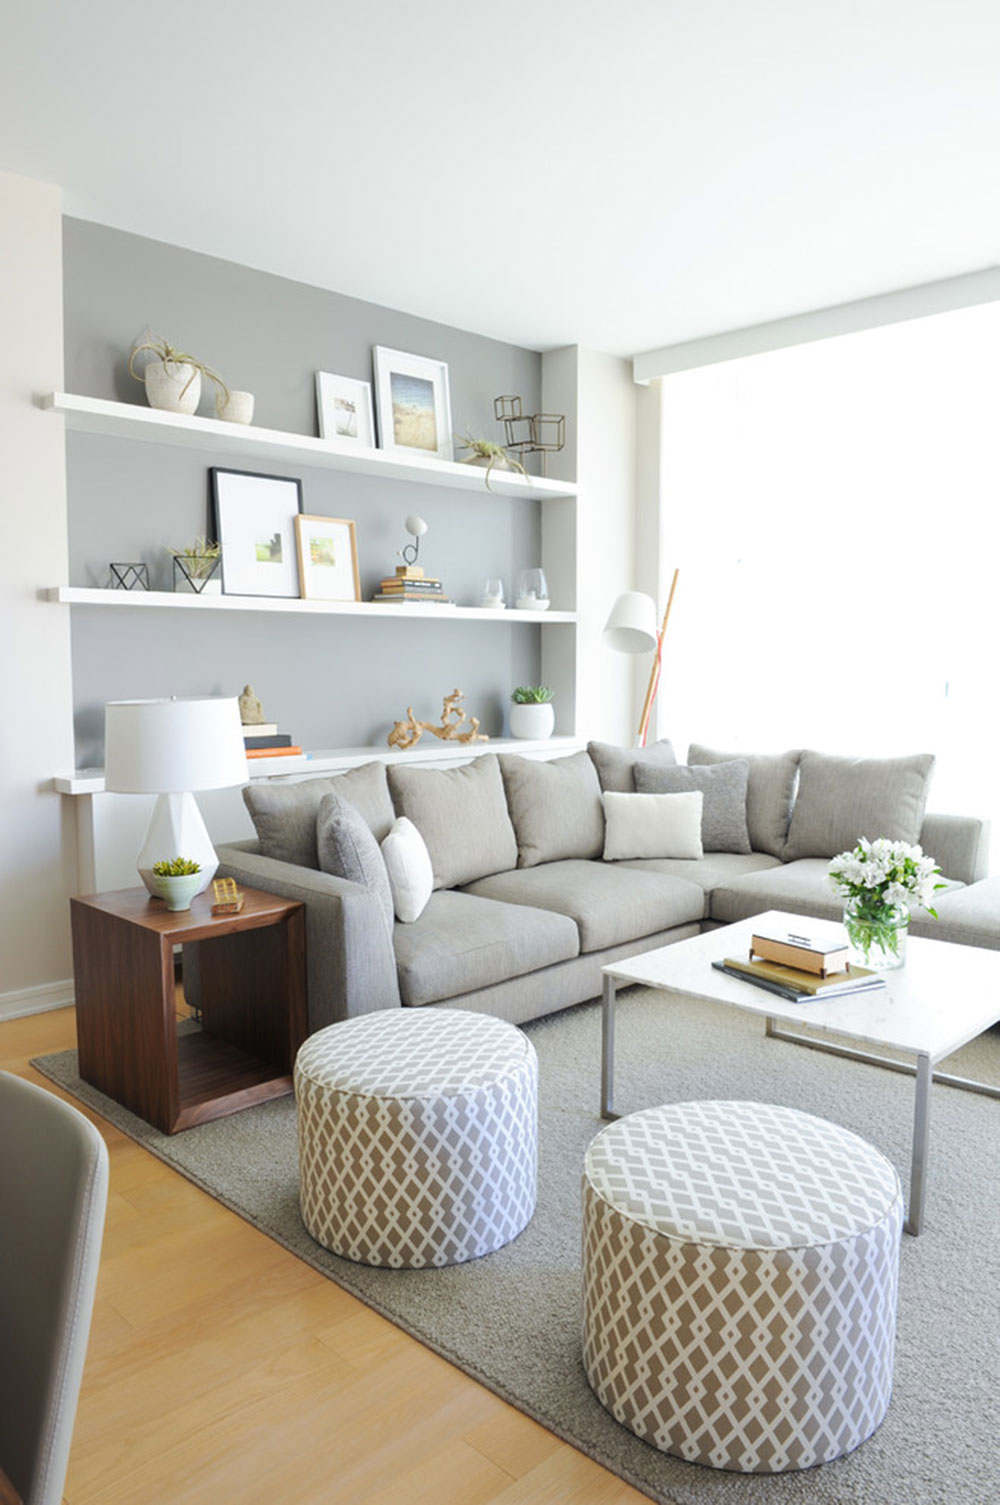 FALSE-CREEK-CONDO-by-SHIFT-Interiors How to arrange furniture in an uncomfortable living room